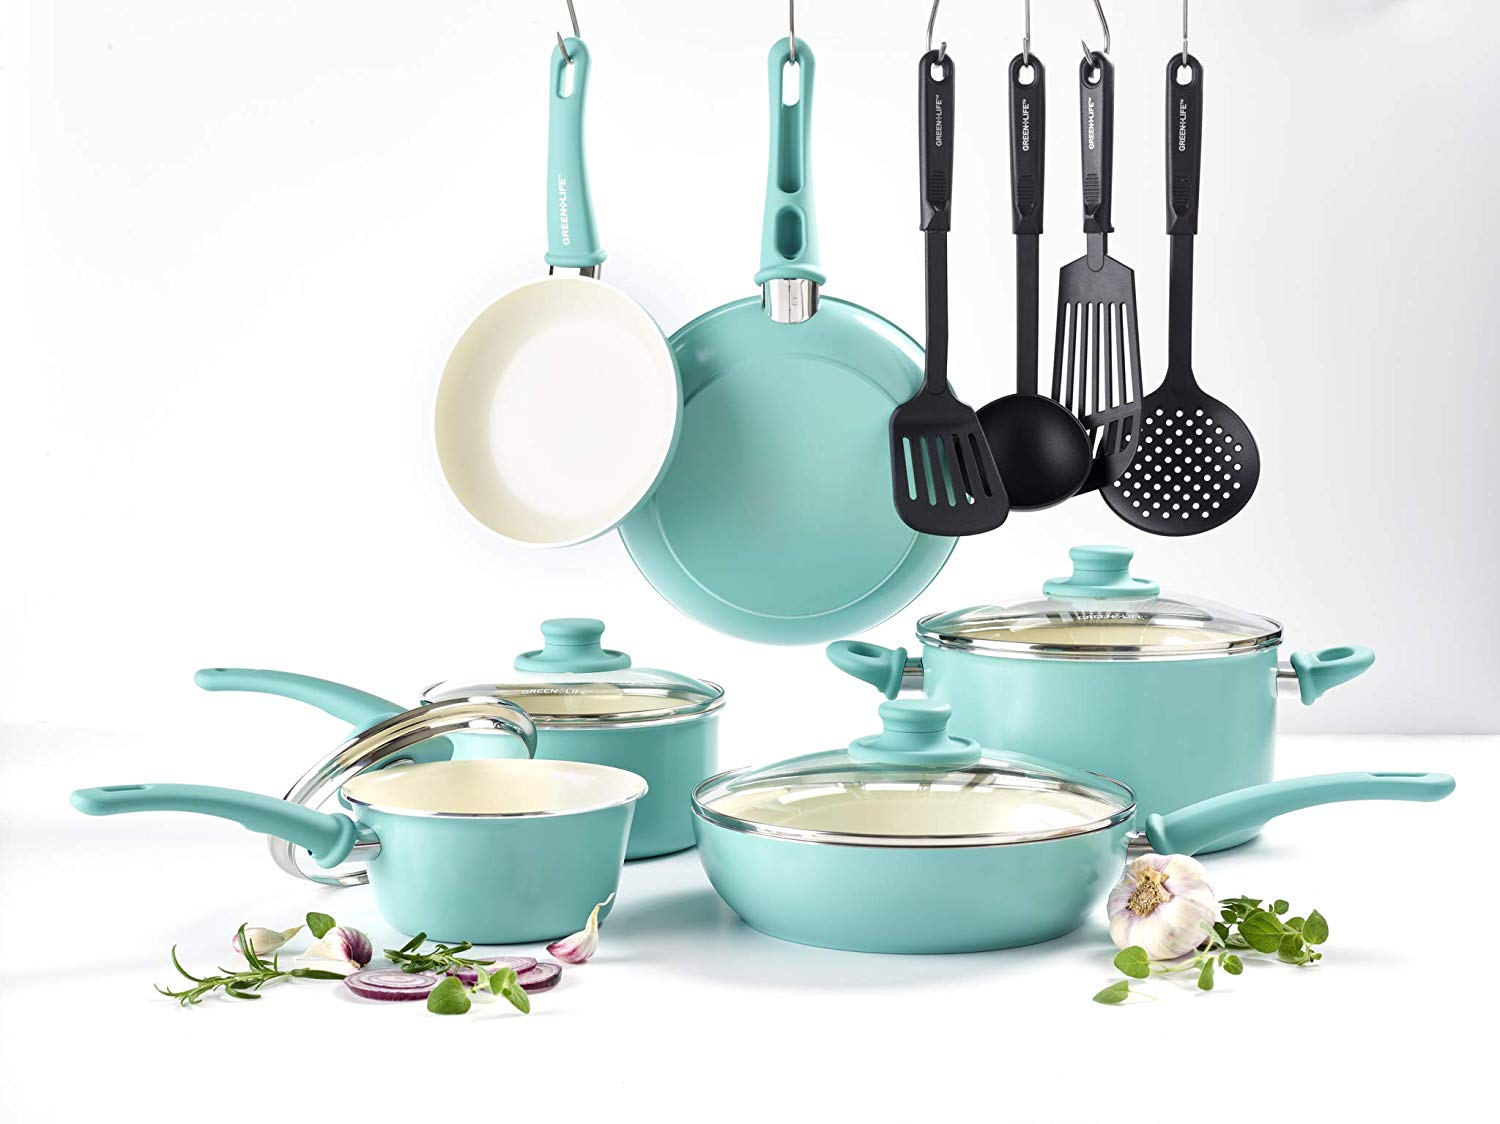 14 Piece Ceramic Non-Stick Cookware Set with Soft Grip Color: Turquoise